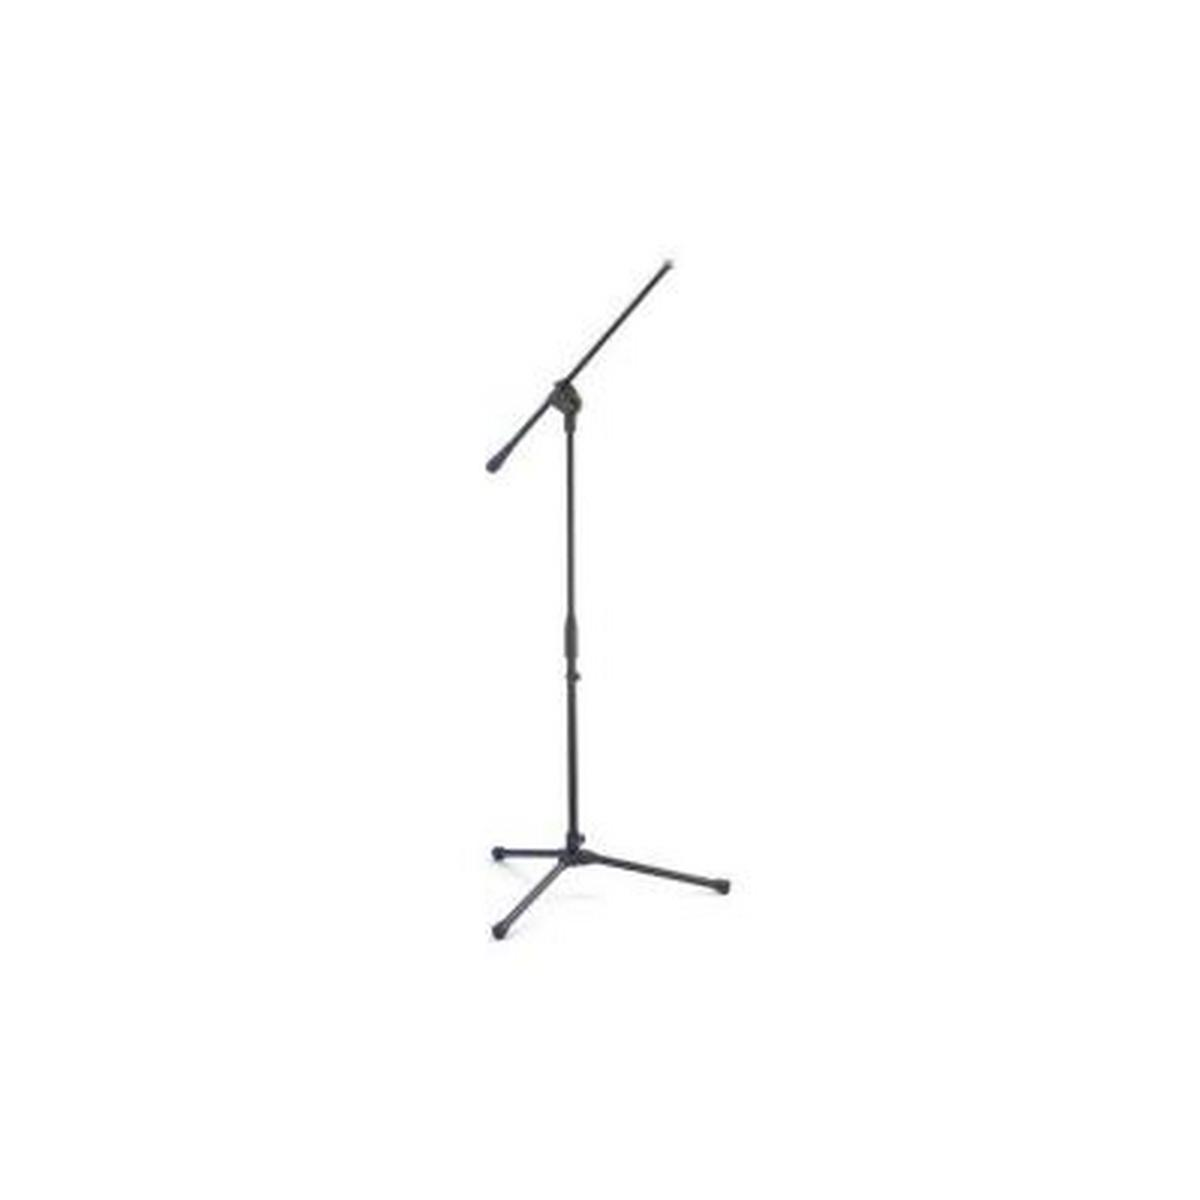 Samson MK10 Boom Stand Collapsible tripod boom stand